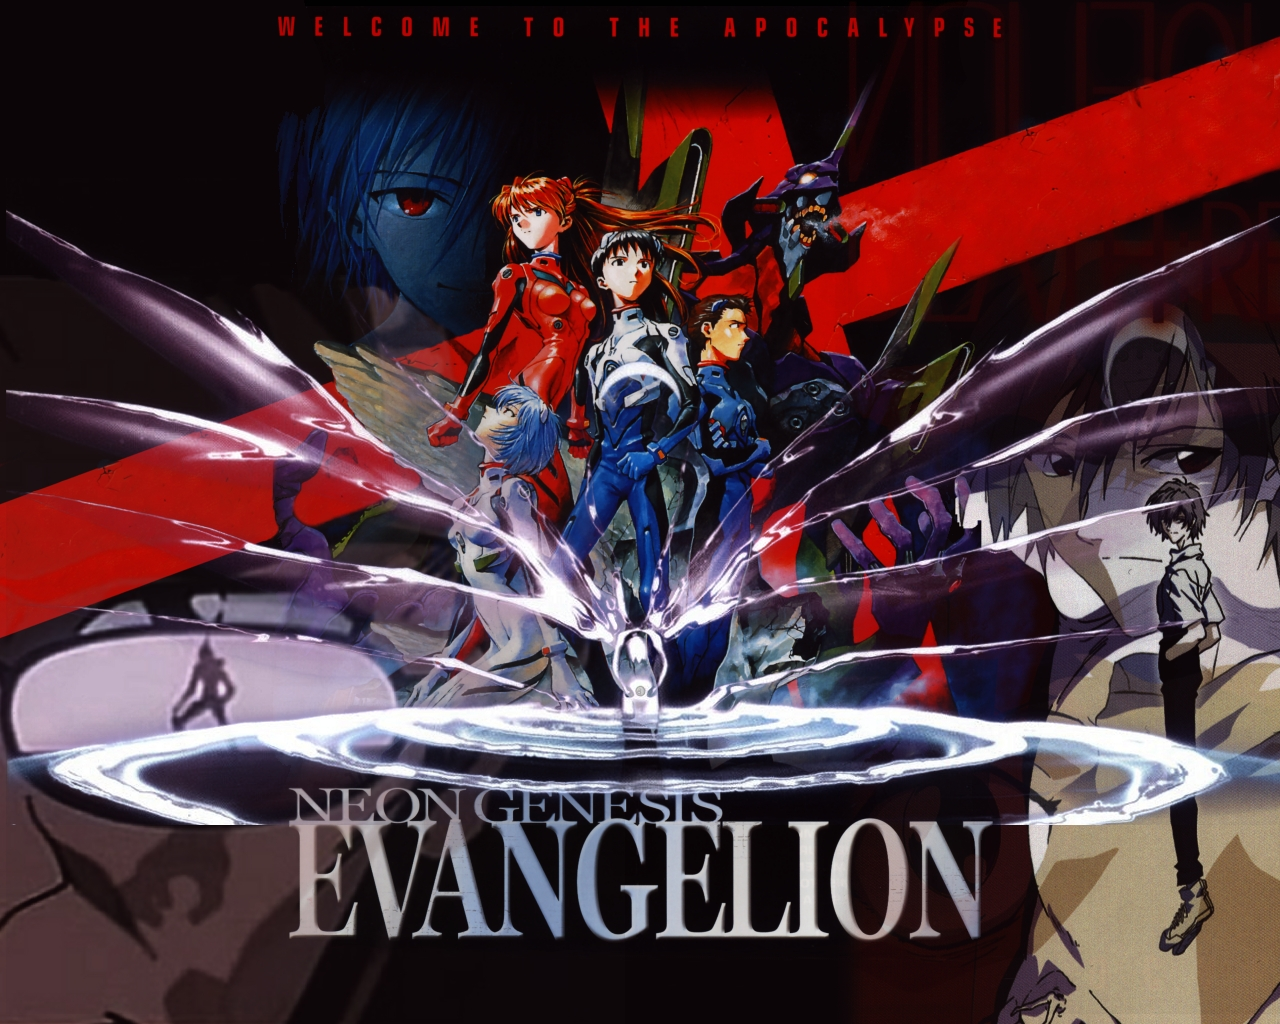 Michael Bay looking to direct a Neon Genesis Evangelion movie?